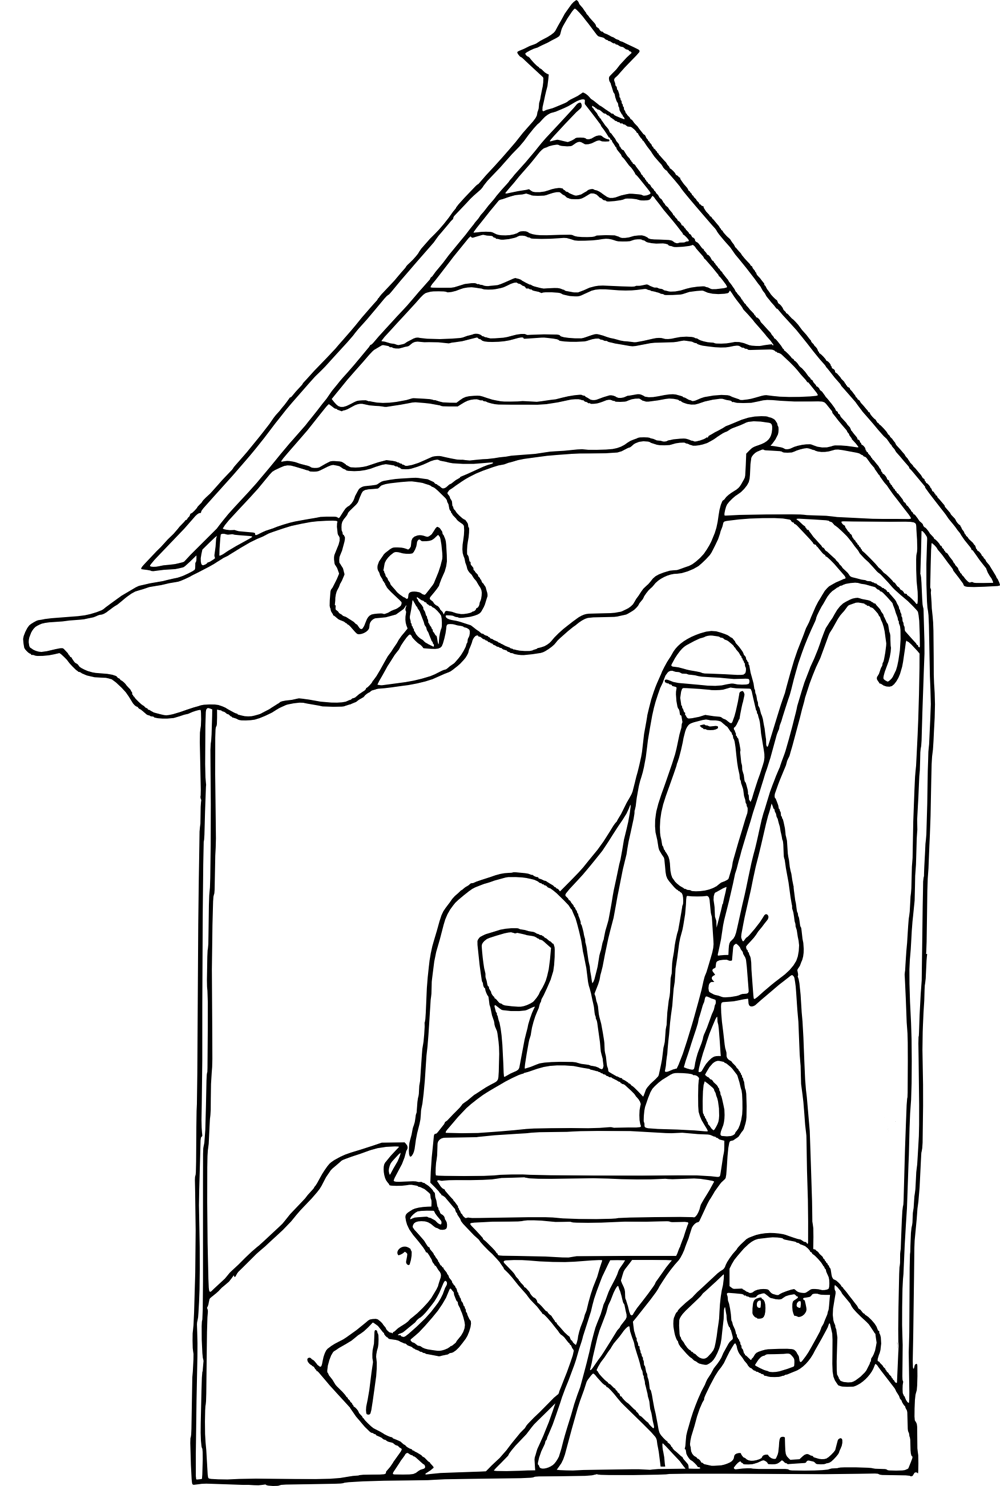 colouring pictures of baby jesus in a manger baby jesus in a manger image printable coloring page in manger baby of pictures a colouring jesus